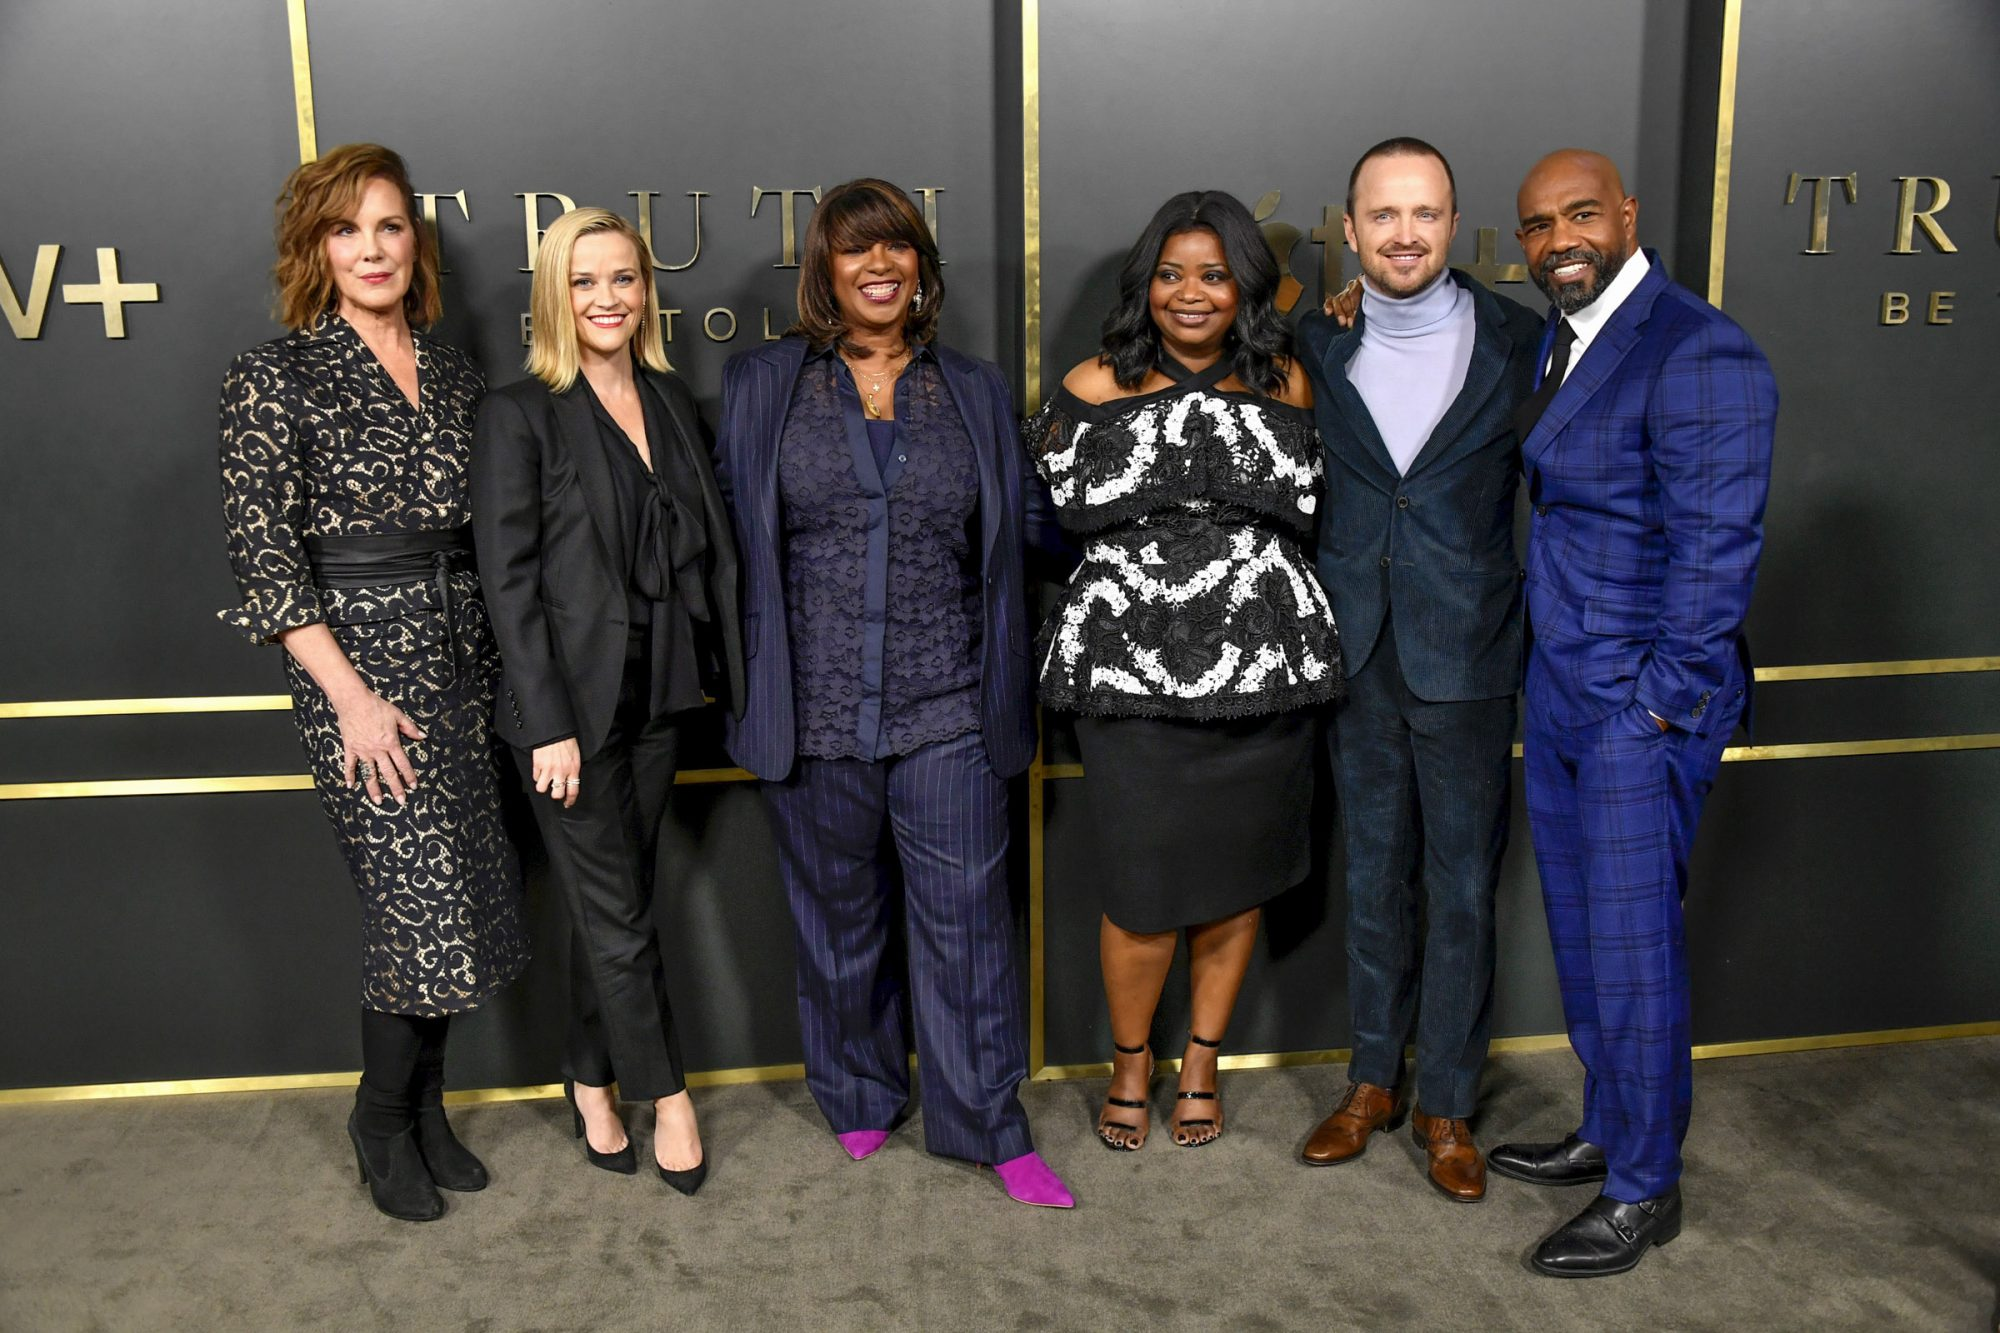 Elizabeth Perkins, Reese Witherspoon, Nichelle Tramble Spellman, Octavia Spencer, Aaron Paul, Michael Beach